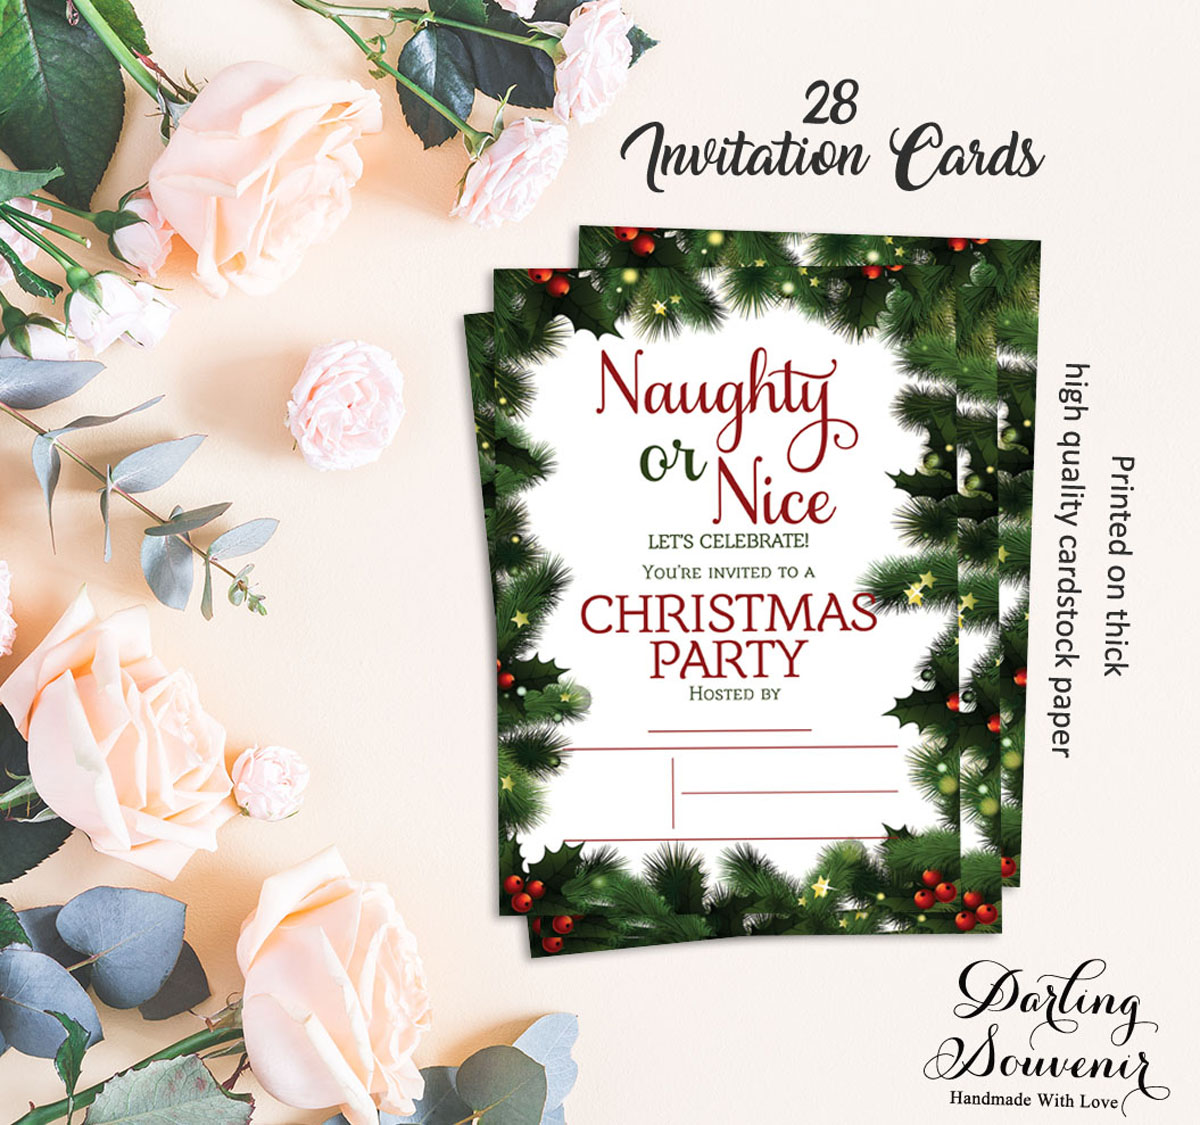 Details About Christmas Invitation Card Printable Write Blank Party Supplies 28 Pcs Ds In477a